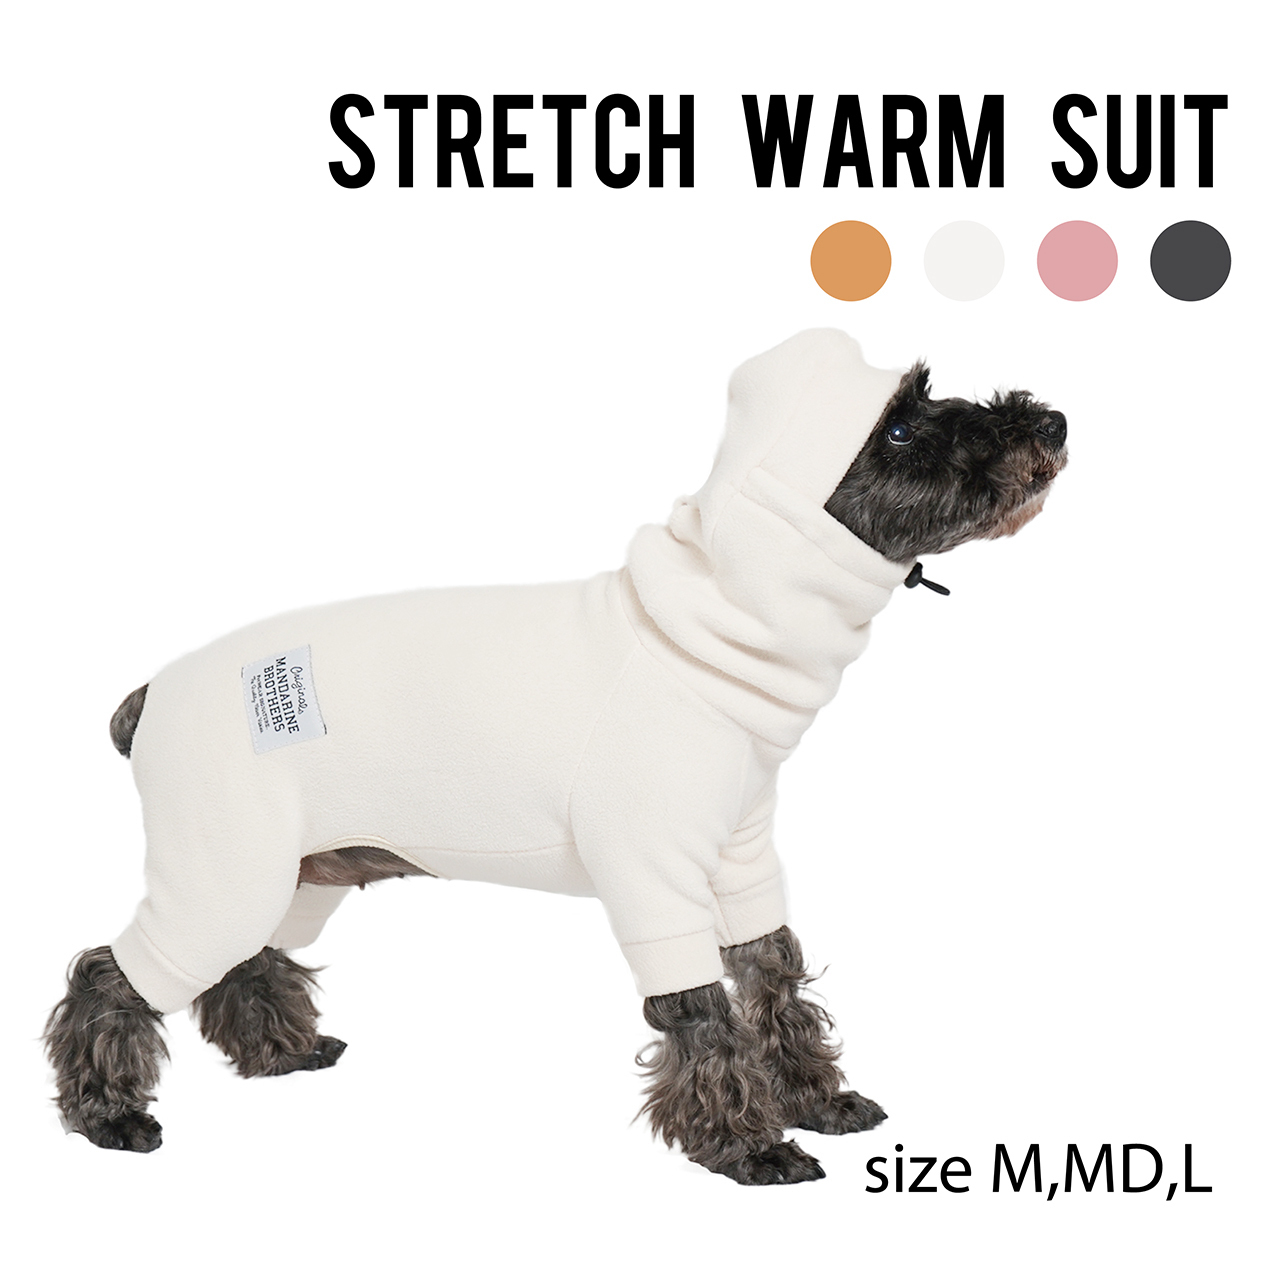 STRETCH WARM SUITS(M,MD,L)ストレッチウォームスーツ